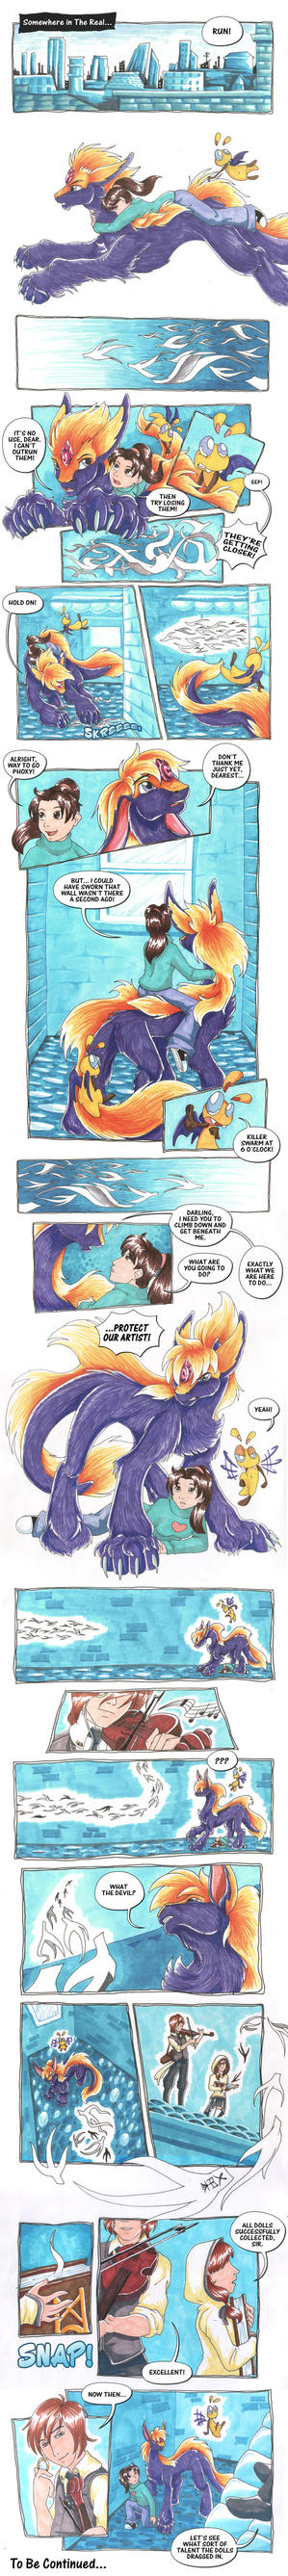 AatR - Audition Page 1 by Wazaga